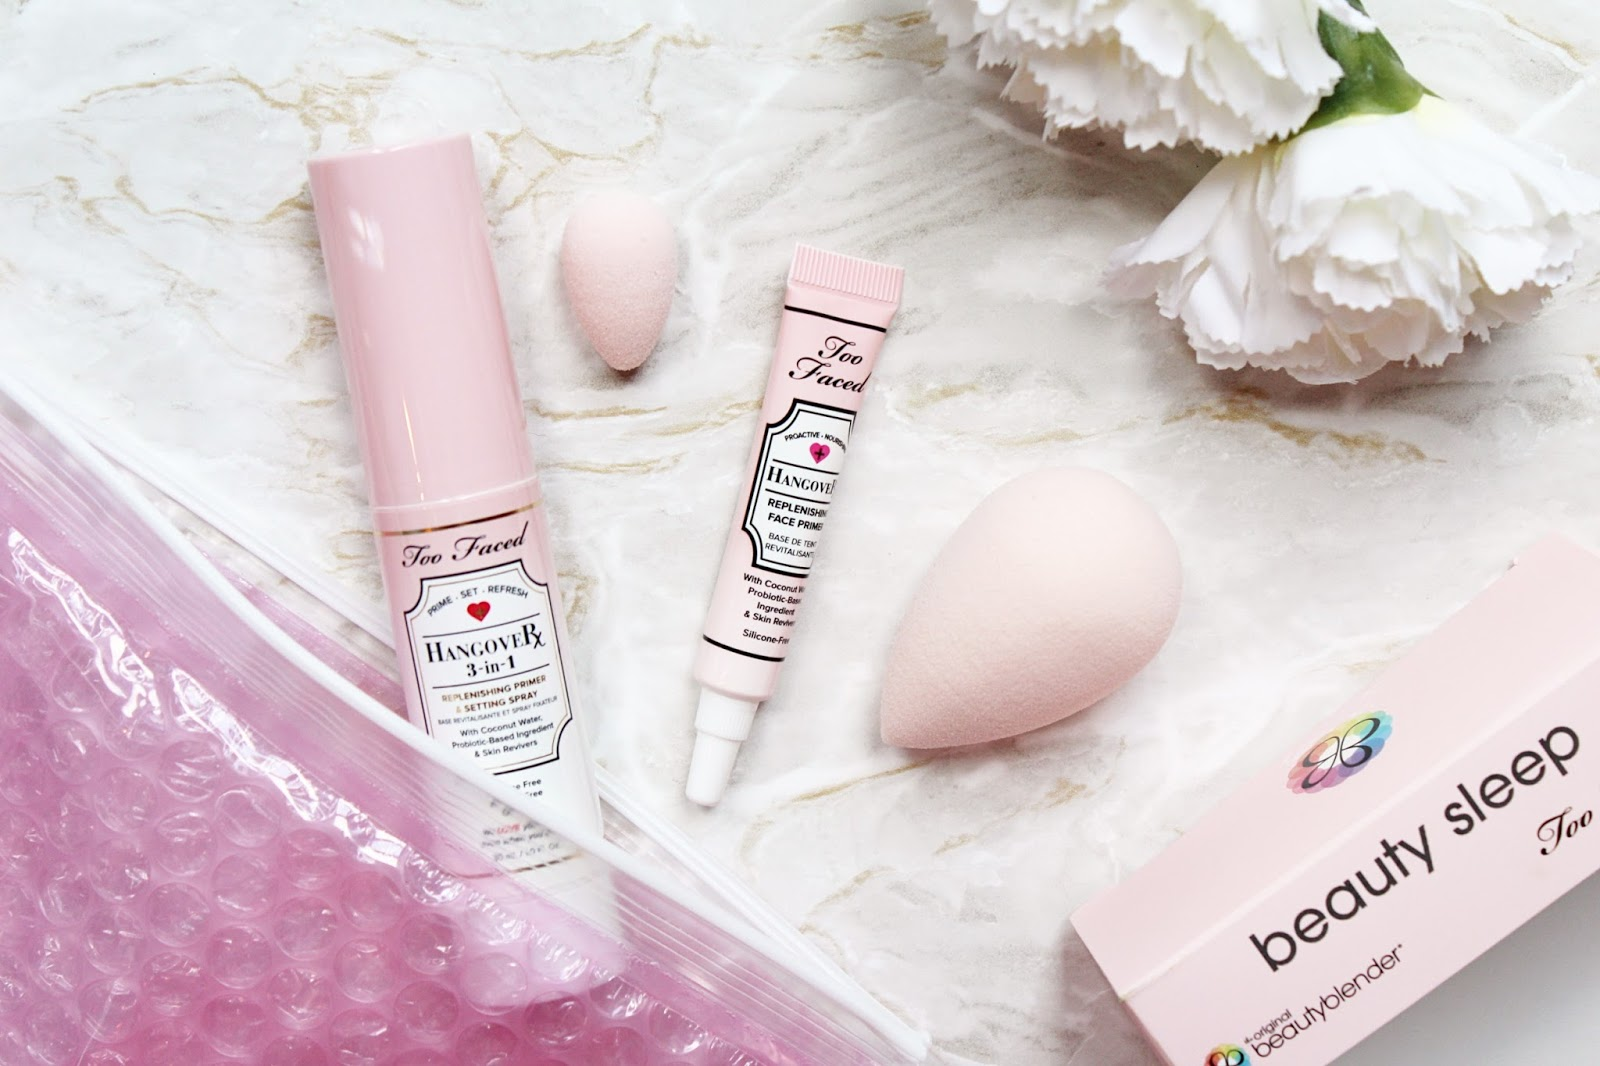 Beautyblender x Too Faced Beauty Sleep Set